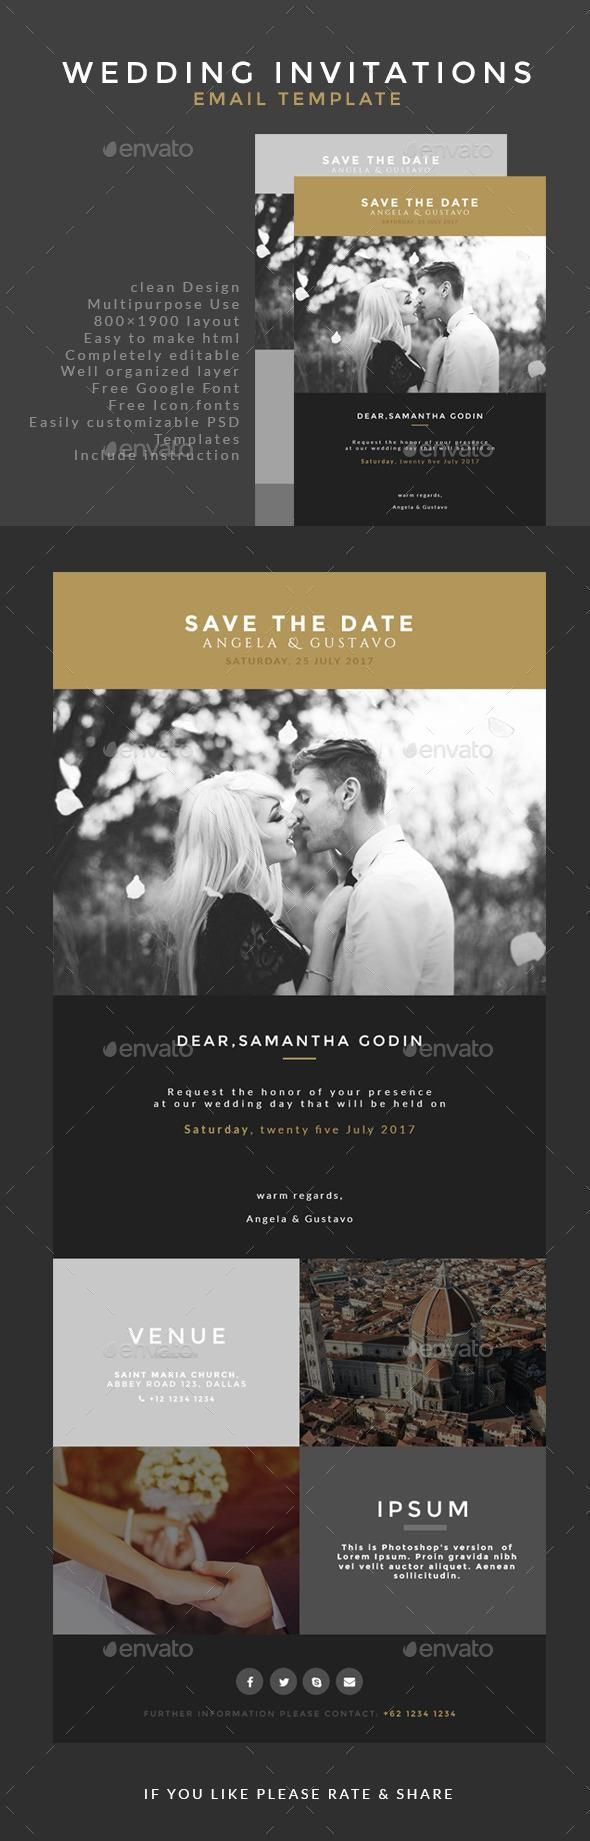 Wedding Invitation Email Template Weddings and Wedding